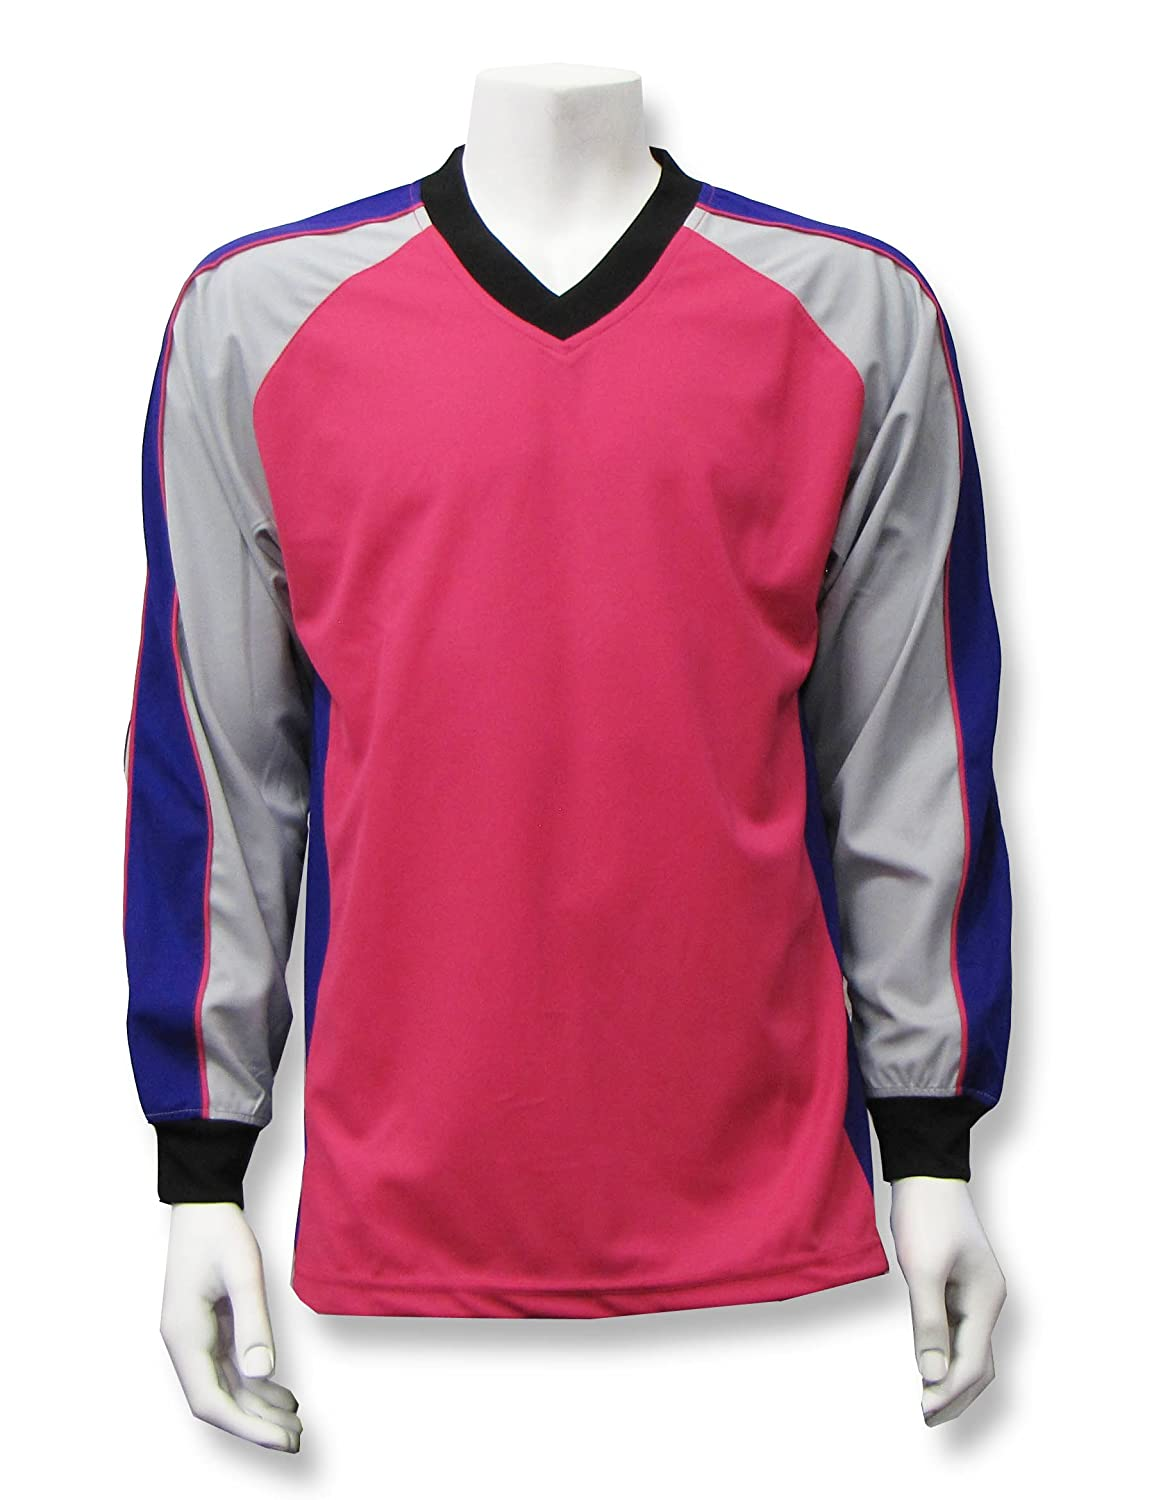 5200f0a05 Amazon.com  Victory long-sleeve soccer goalie jersey customized with your  name and number  Clothing